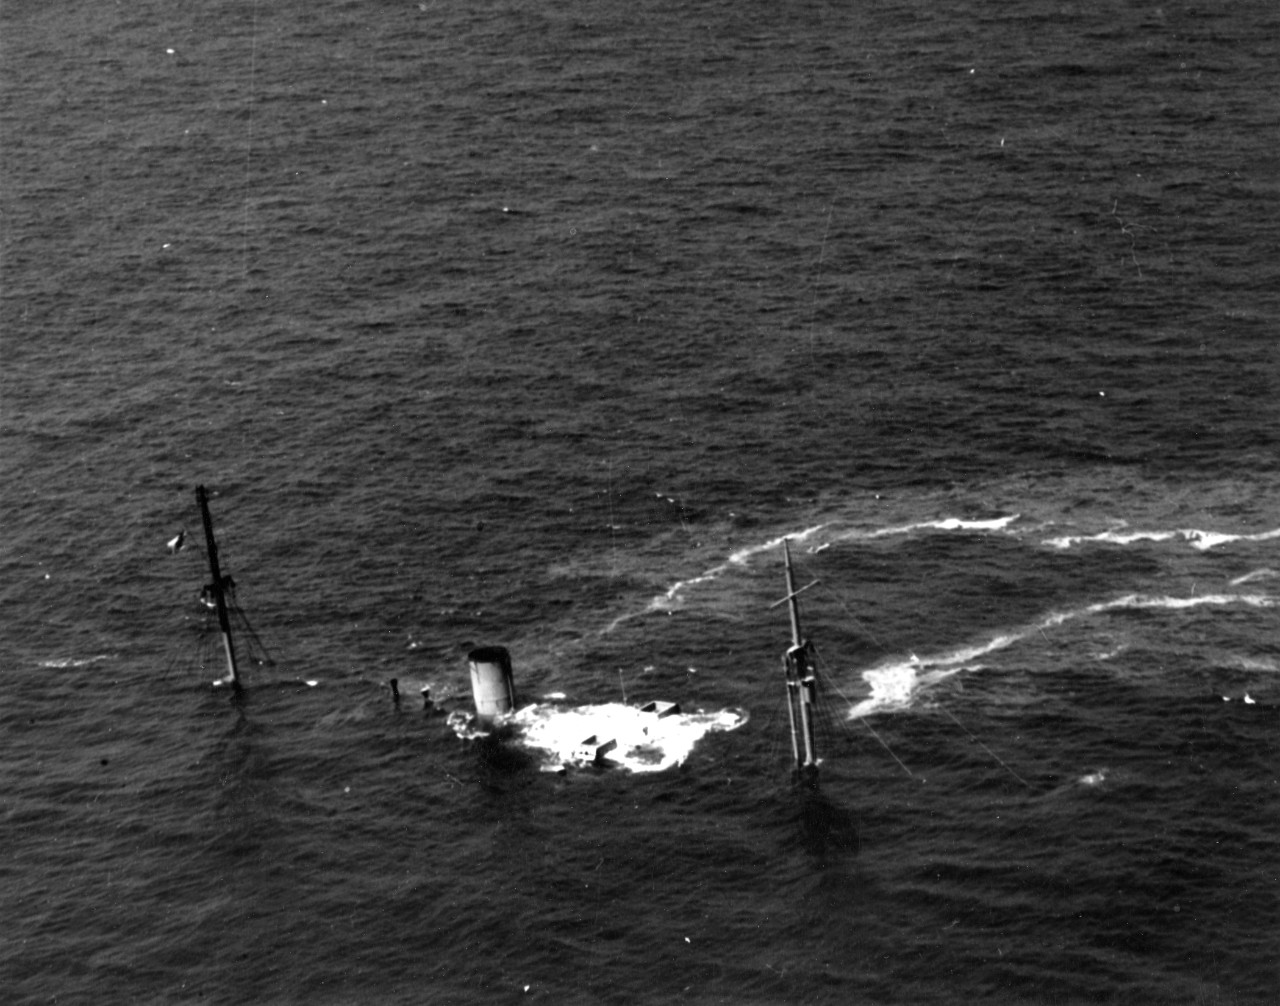 Empire Thrush, victim of U-203, lying on the bottom, 10-12 miles due east of the Cape Hatteras Lighthouse. Asterion rescued her entire crew on 14 April 1942. (U.S. Navy Photograph 80-CF-1054-3, National Archives and Records Administration, Still Pictures Branch, College Park, Md.)